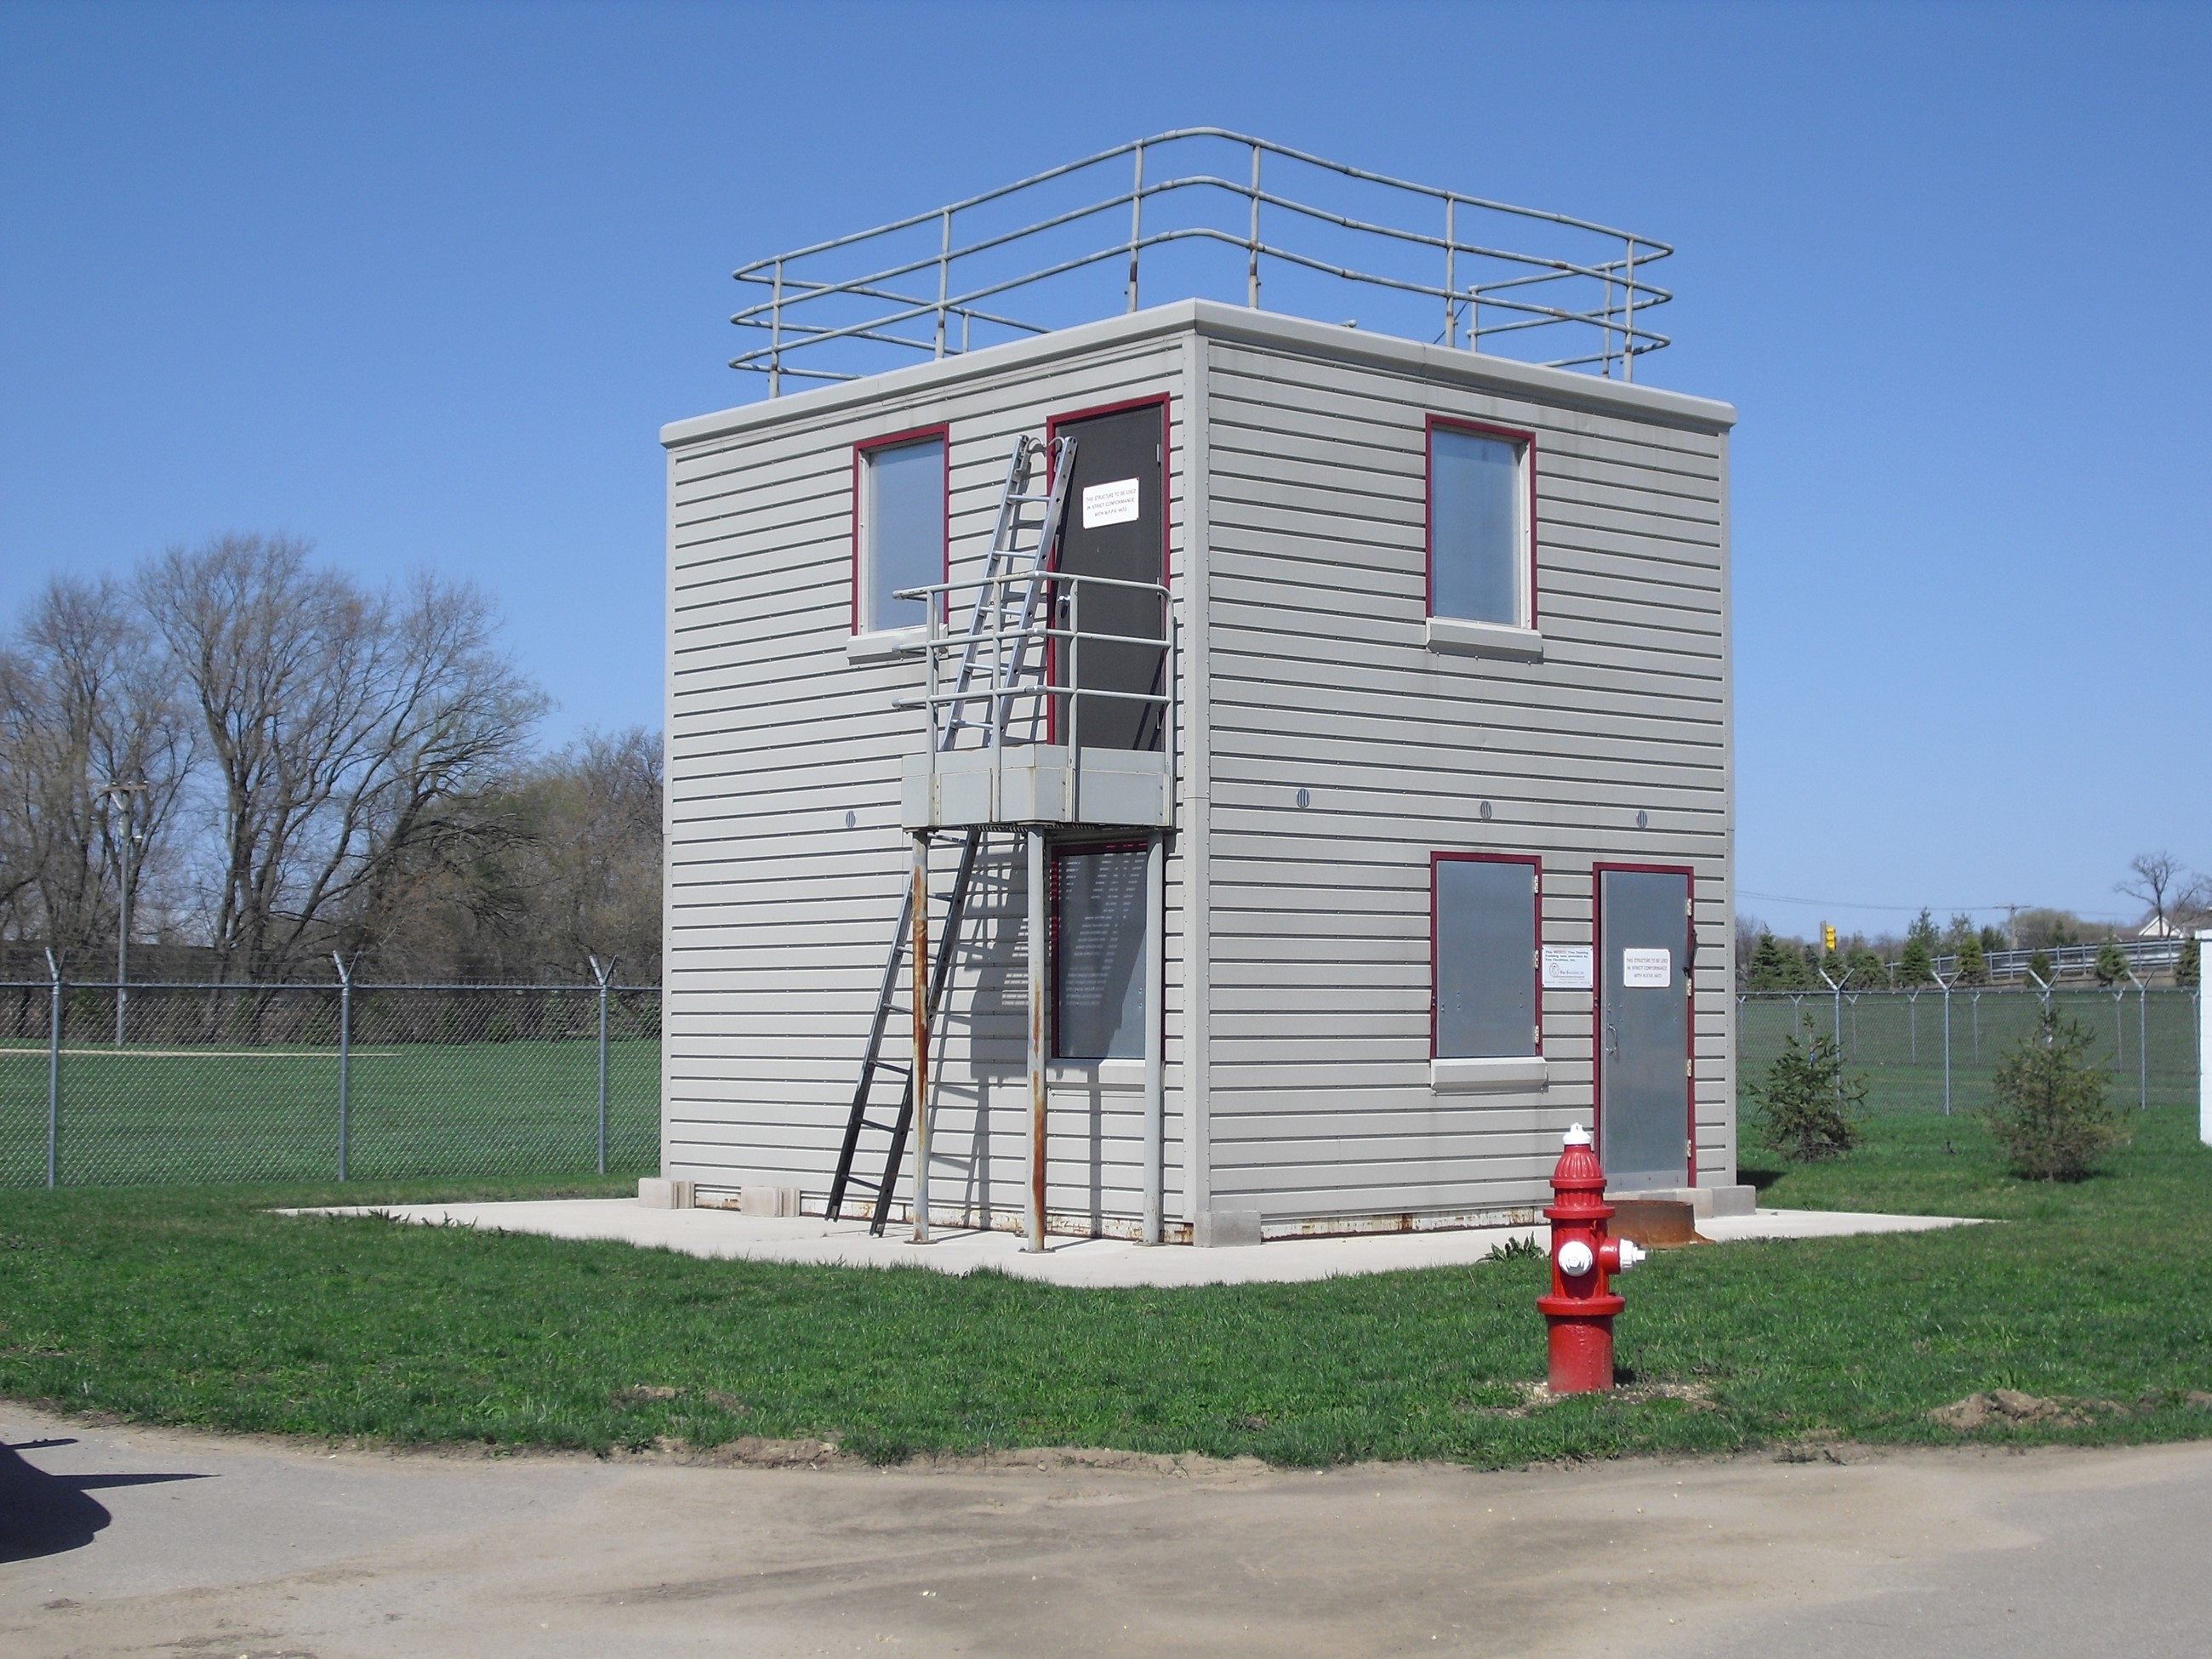 The burn tower located at the Fire Department